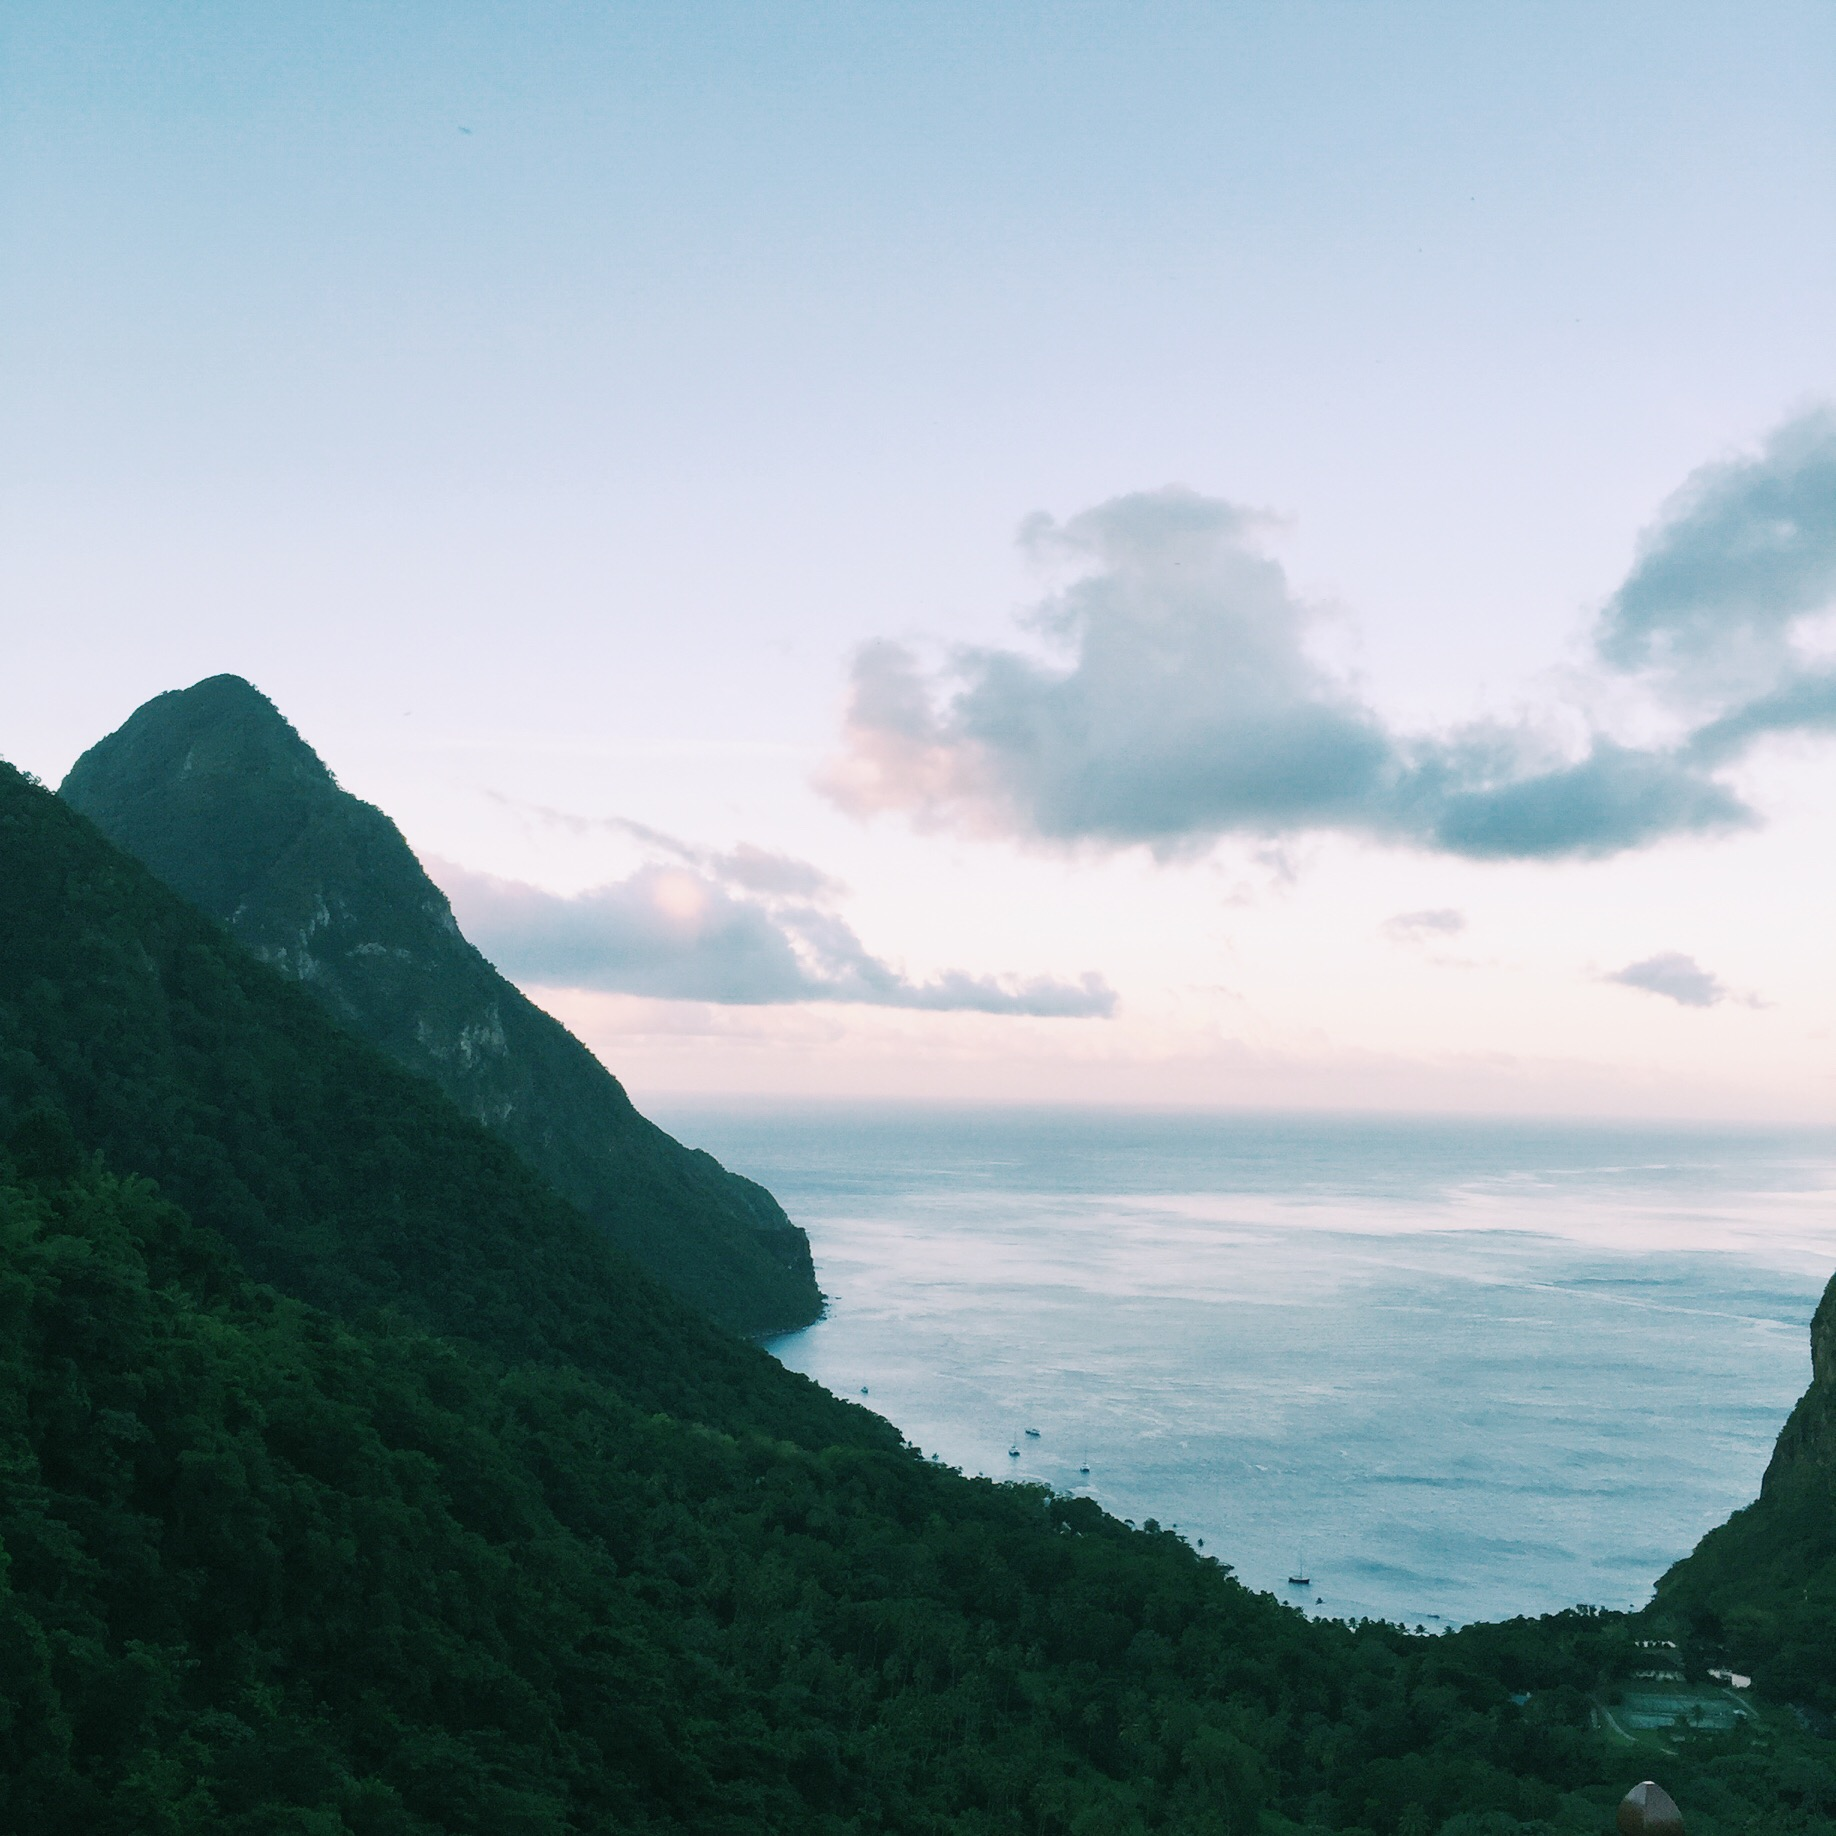 A gorgeous view of the gros piton and Caribbean sea on our honeymoon in St. Lucia